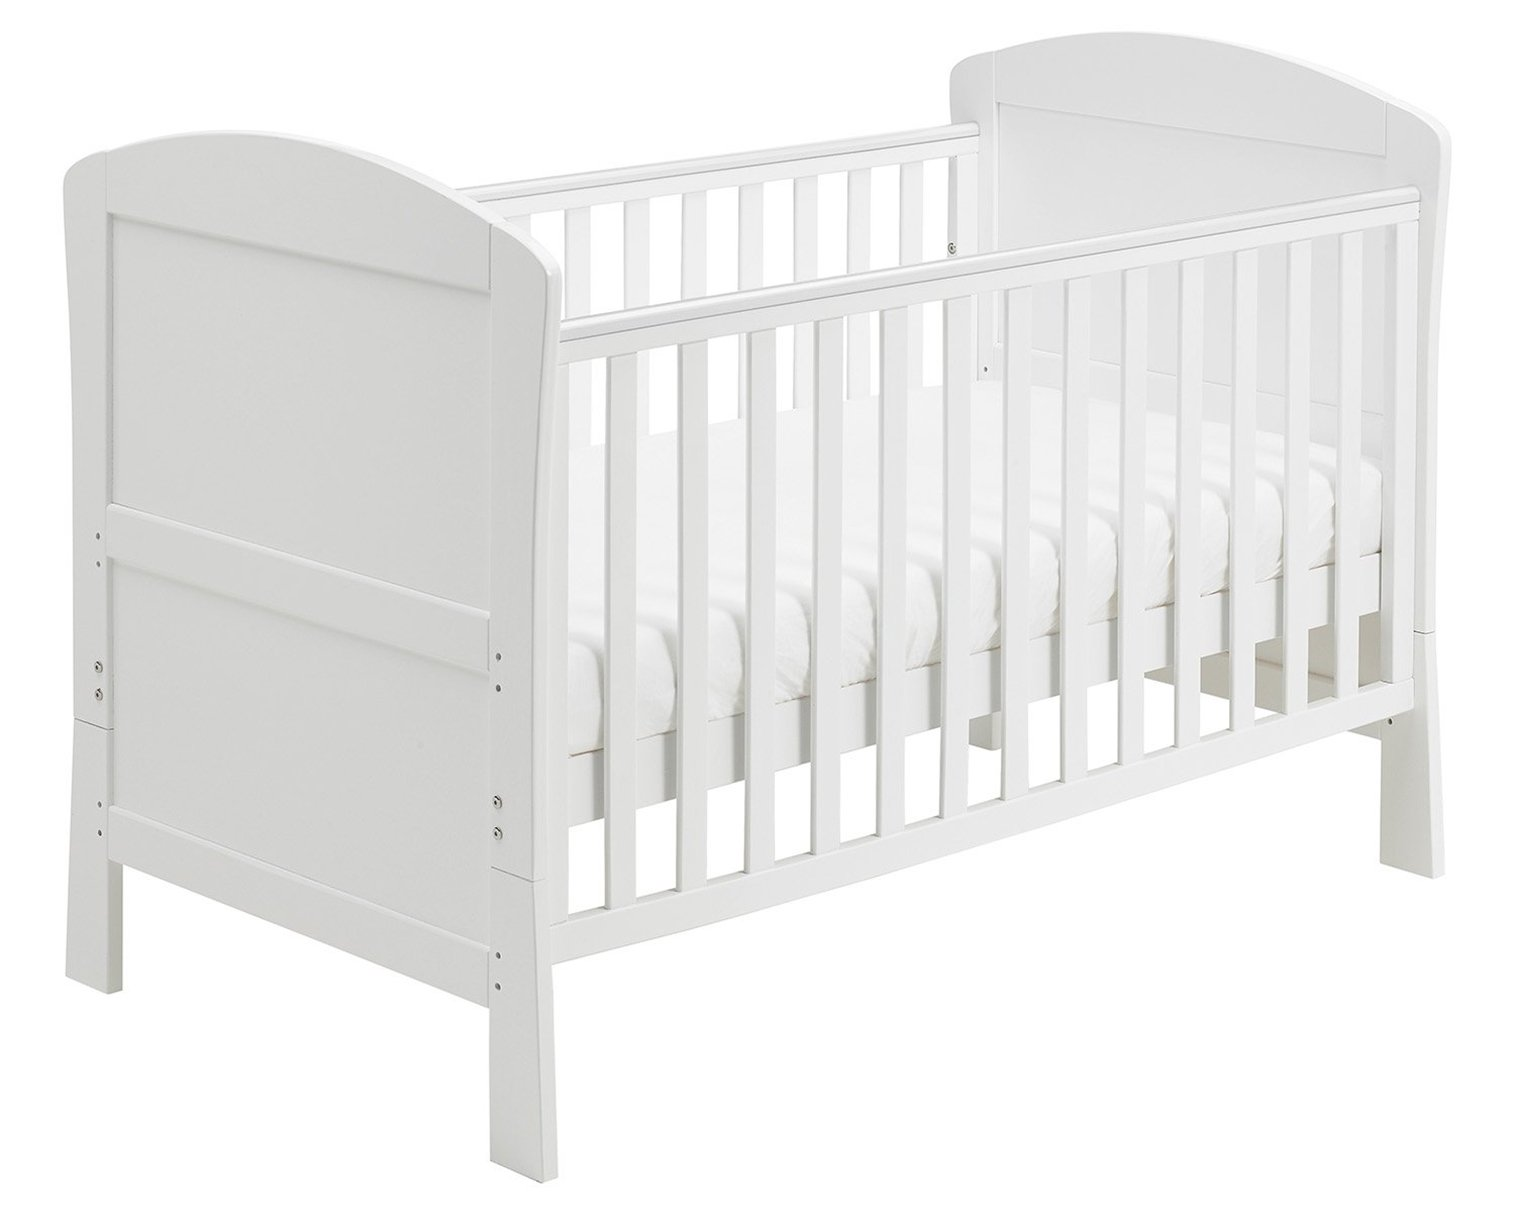 Babymore Aston Drop Side Cot Bed (White)  3-base heights 1-drop side, 1-fixed side 2-split ends convert to bed 2